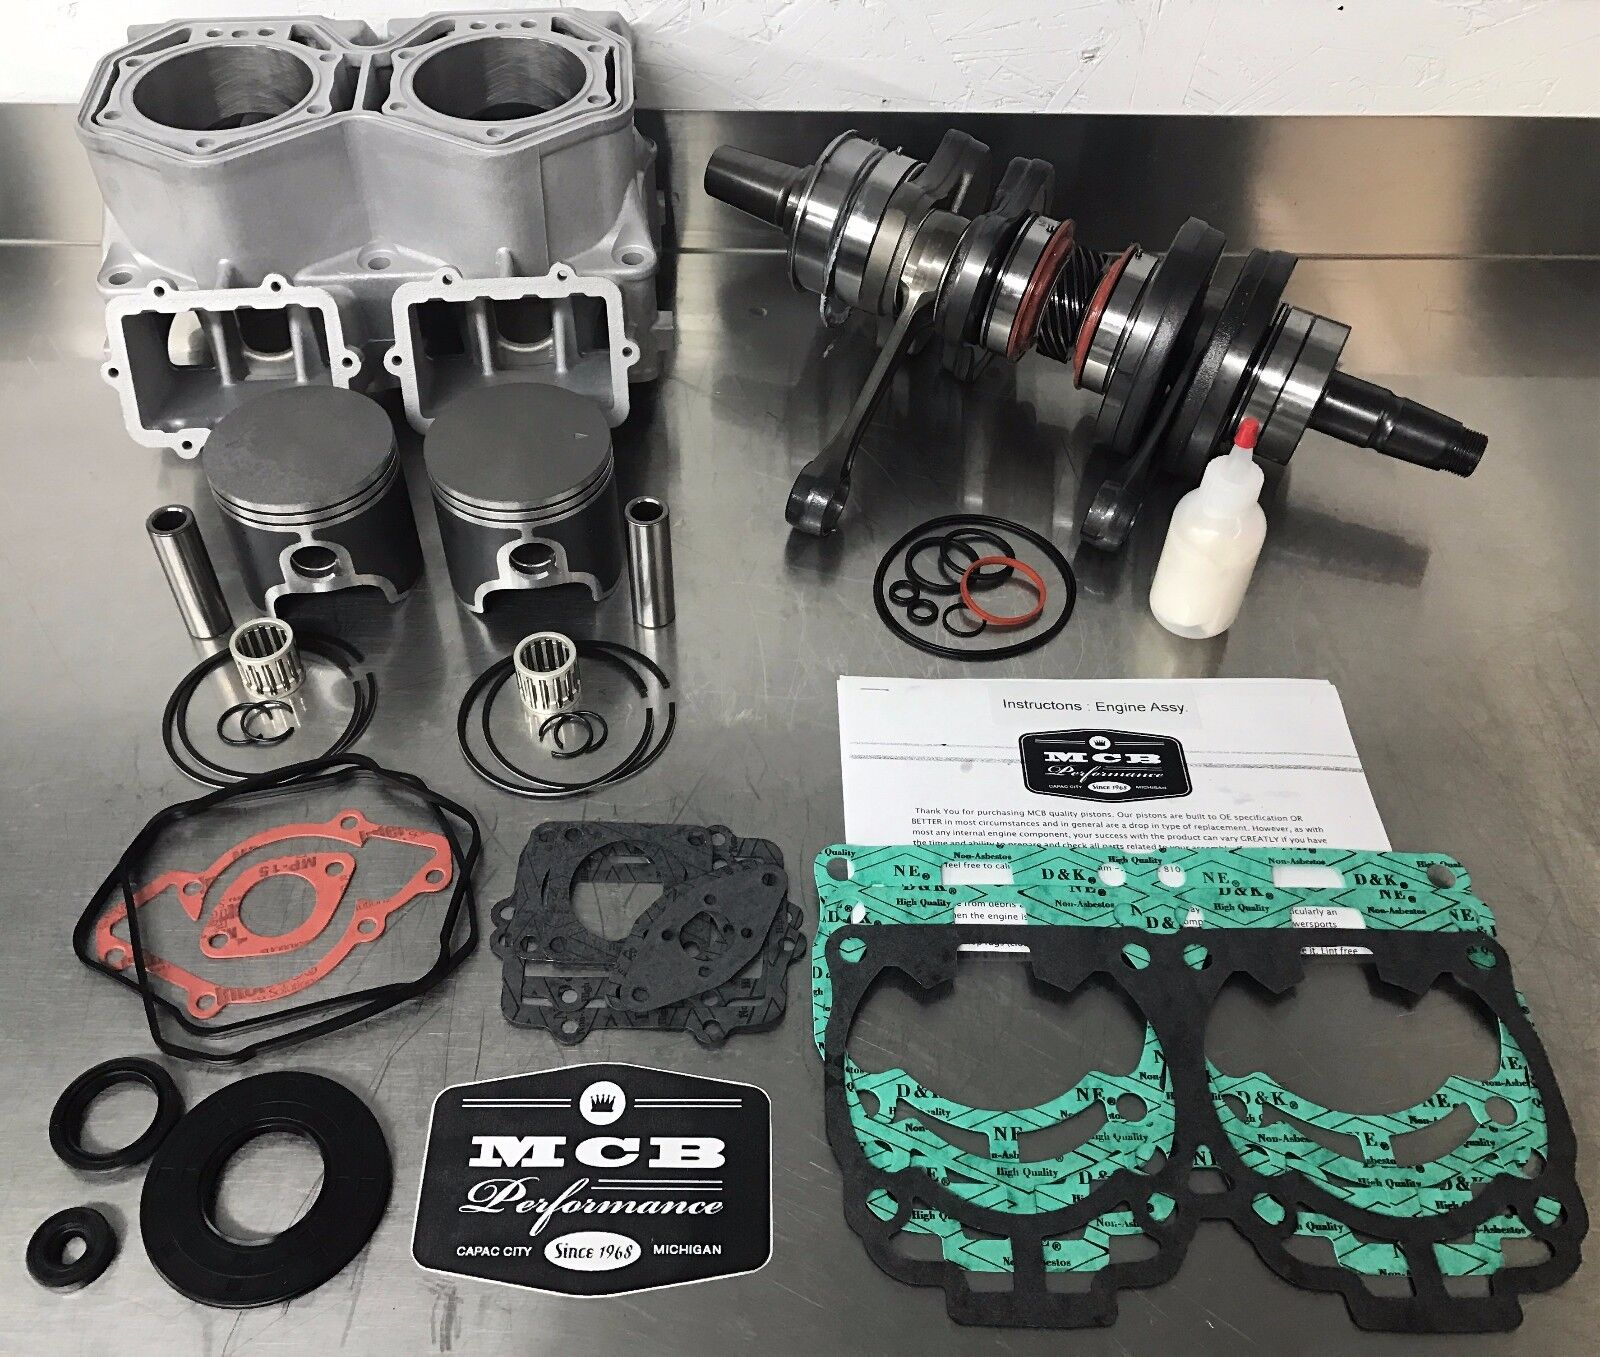 2010 Ski-Doo MXZ 800R Engine Rebuild Kit - MCB STAGE 3 -Renegade Adrenaline